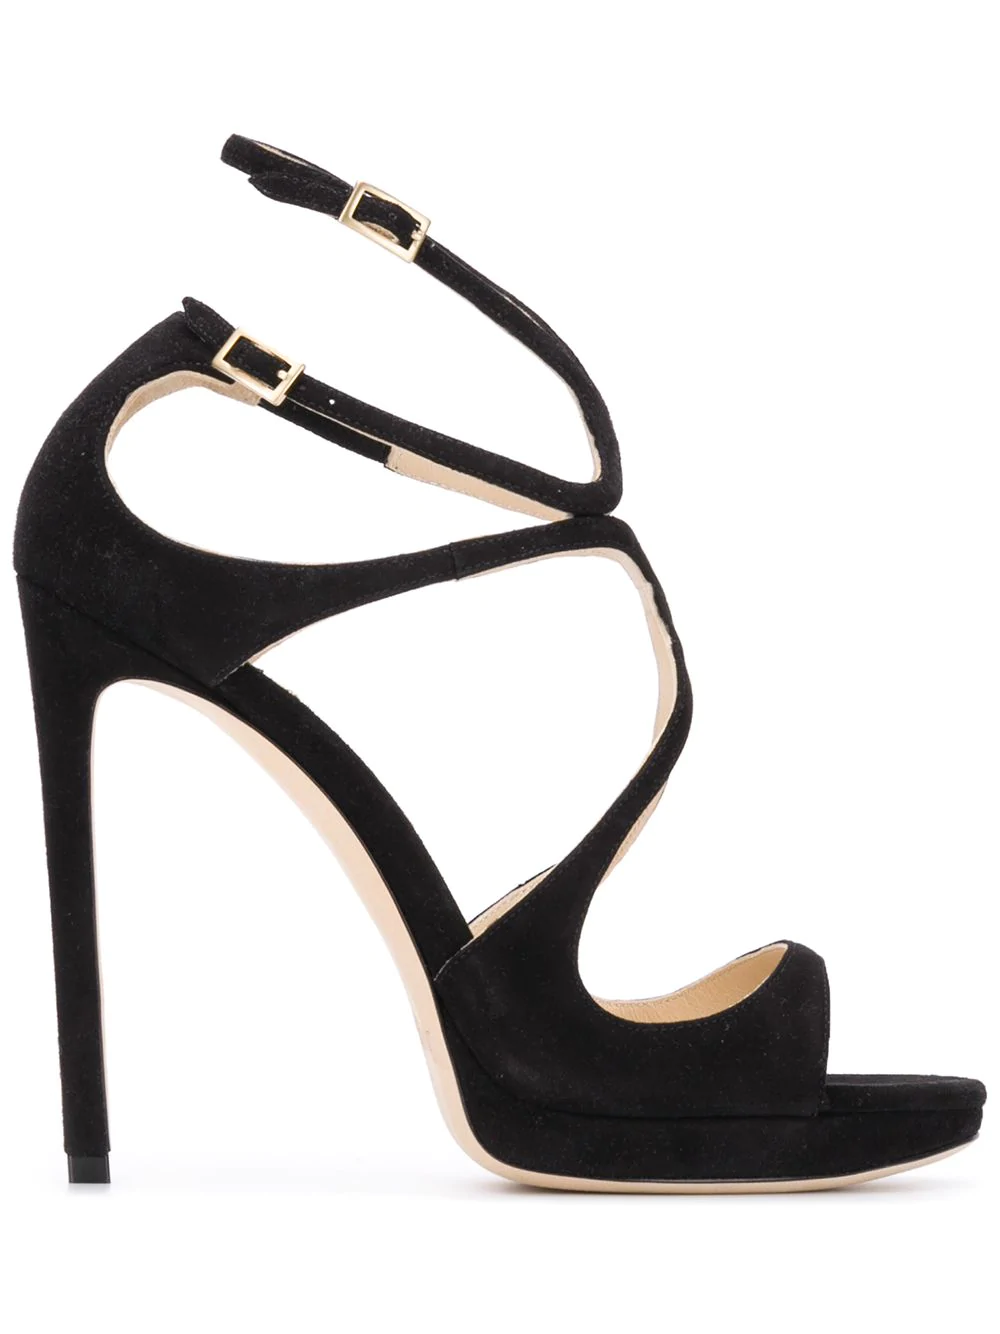 e69b6400d913 Jimmy Choo Lance 100 Suede Heeled Sandals In Black